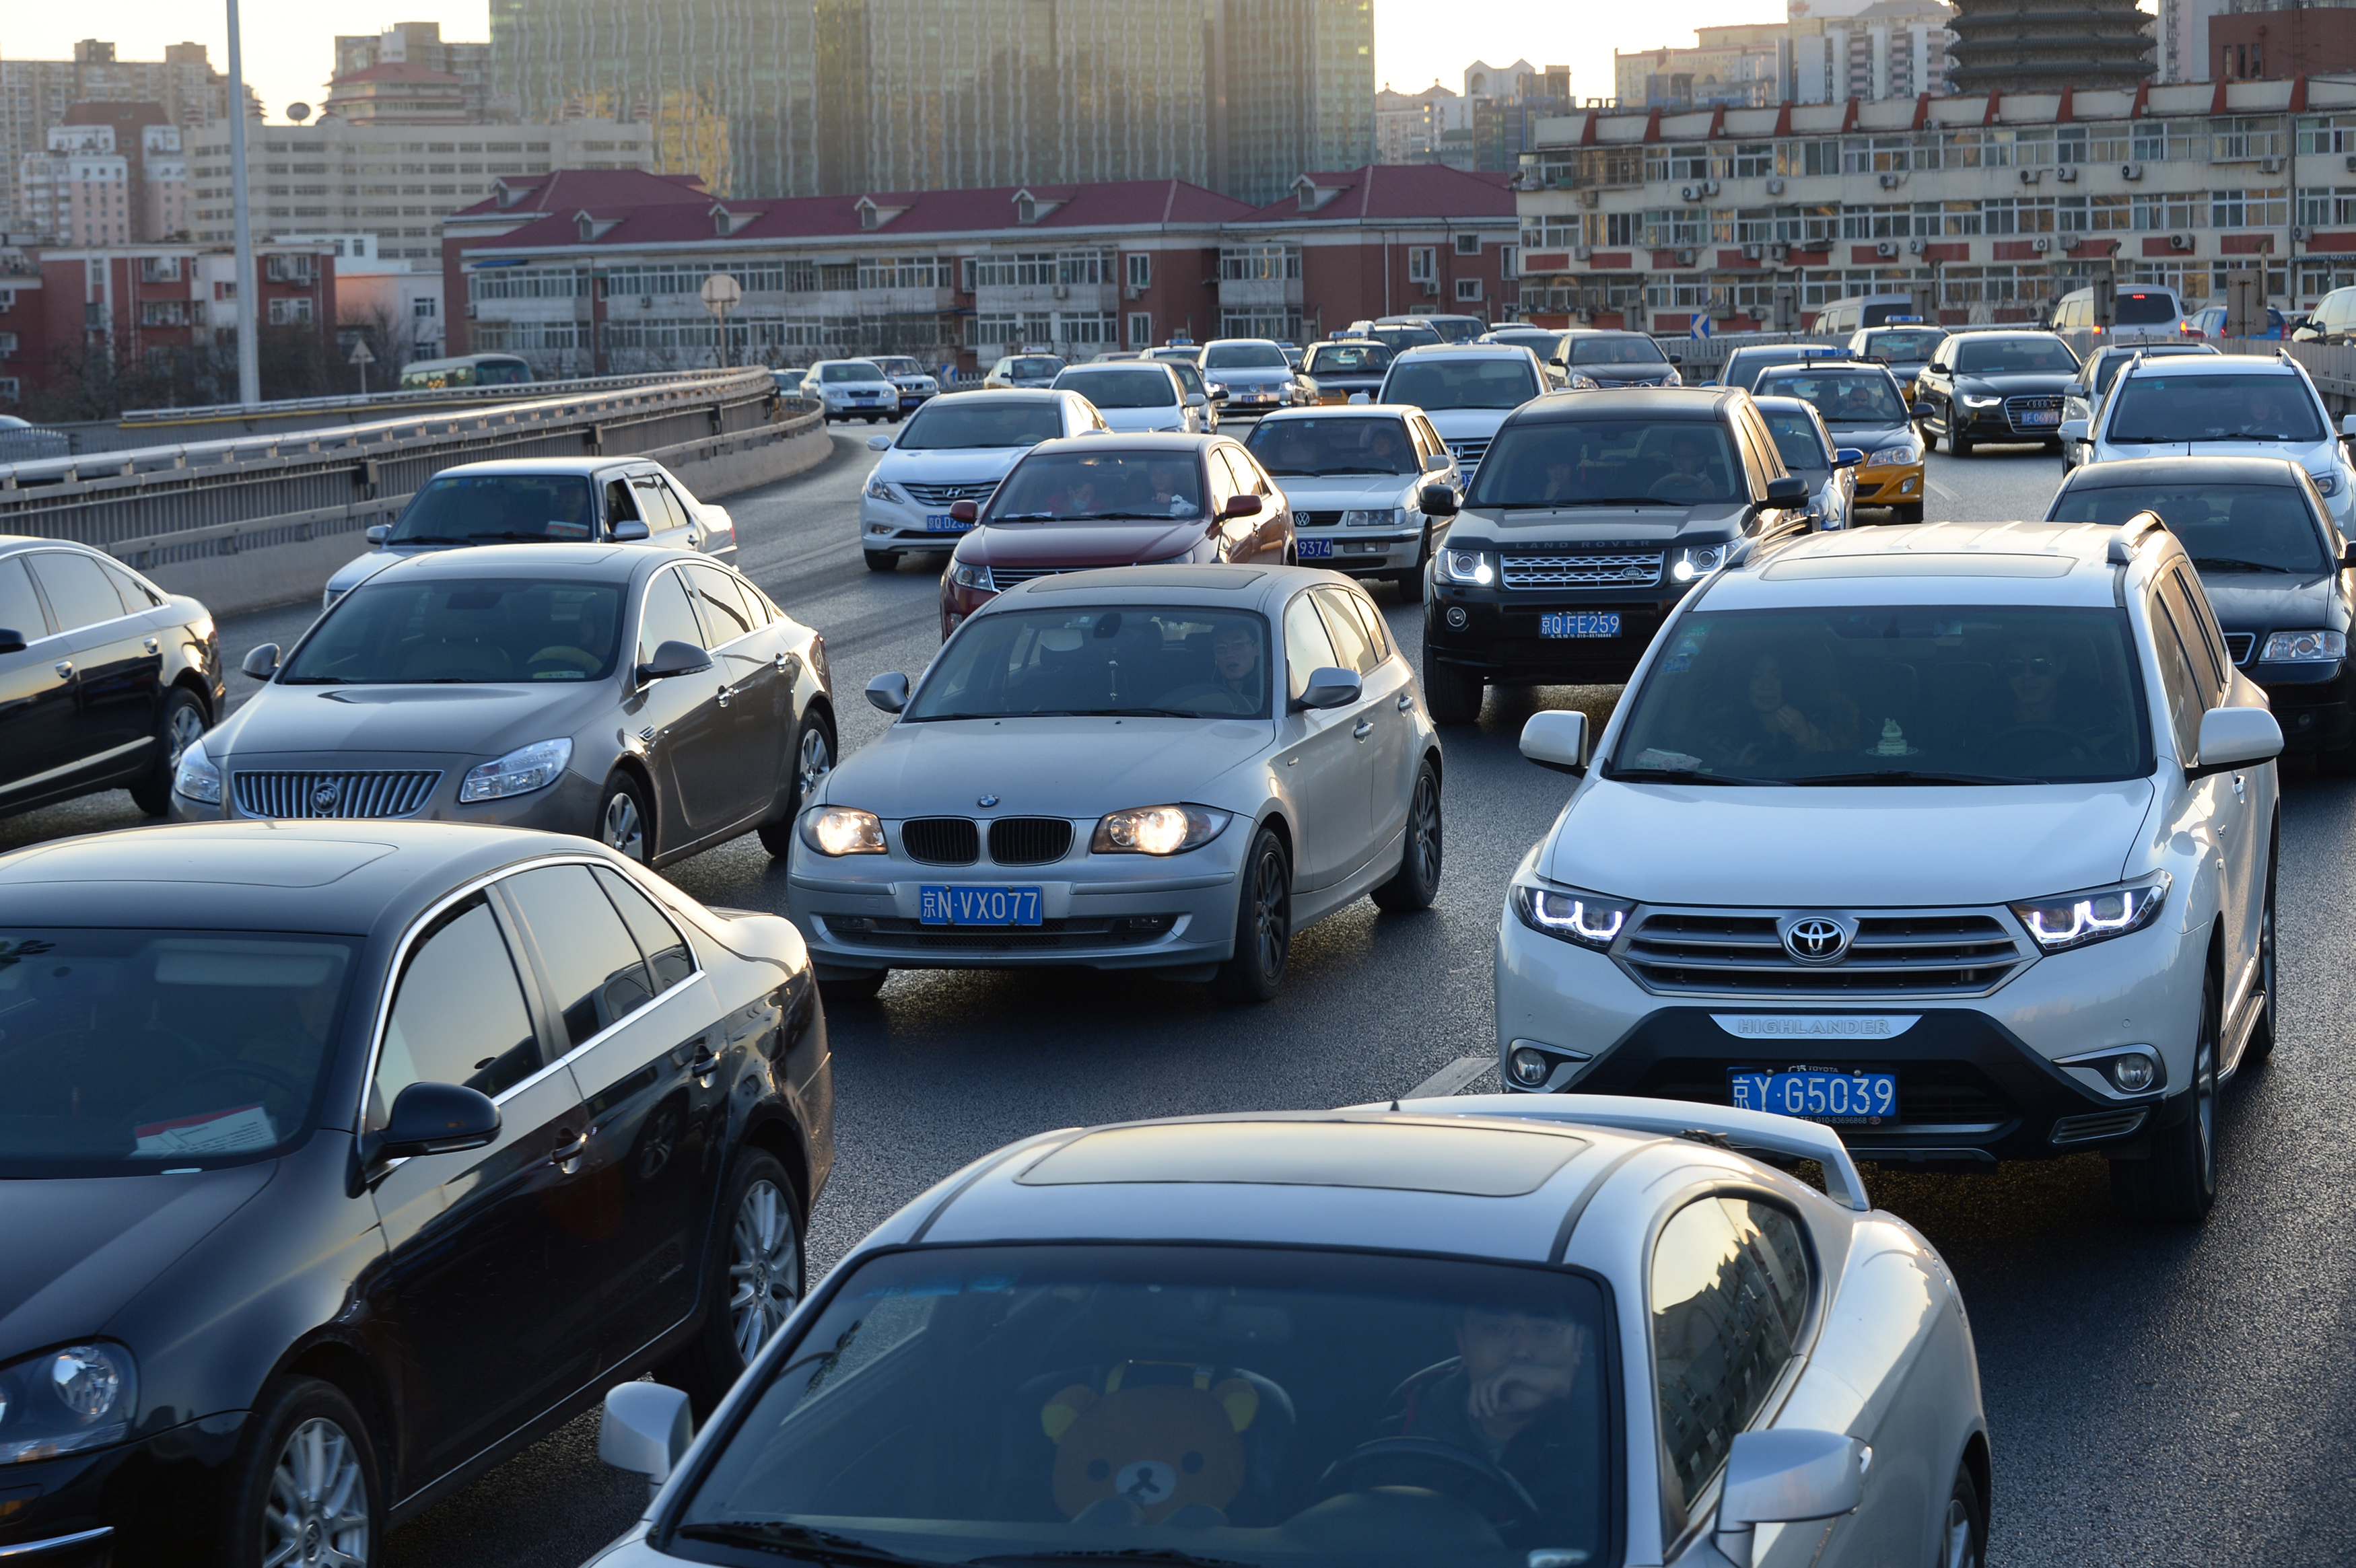 China wants to track citizens' cars with mandatory RFID